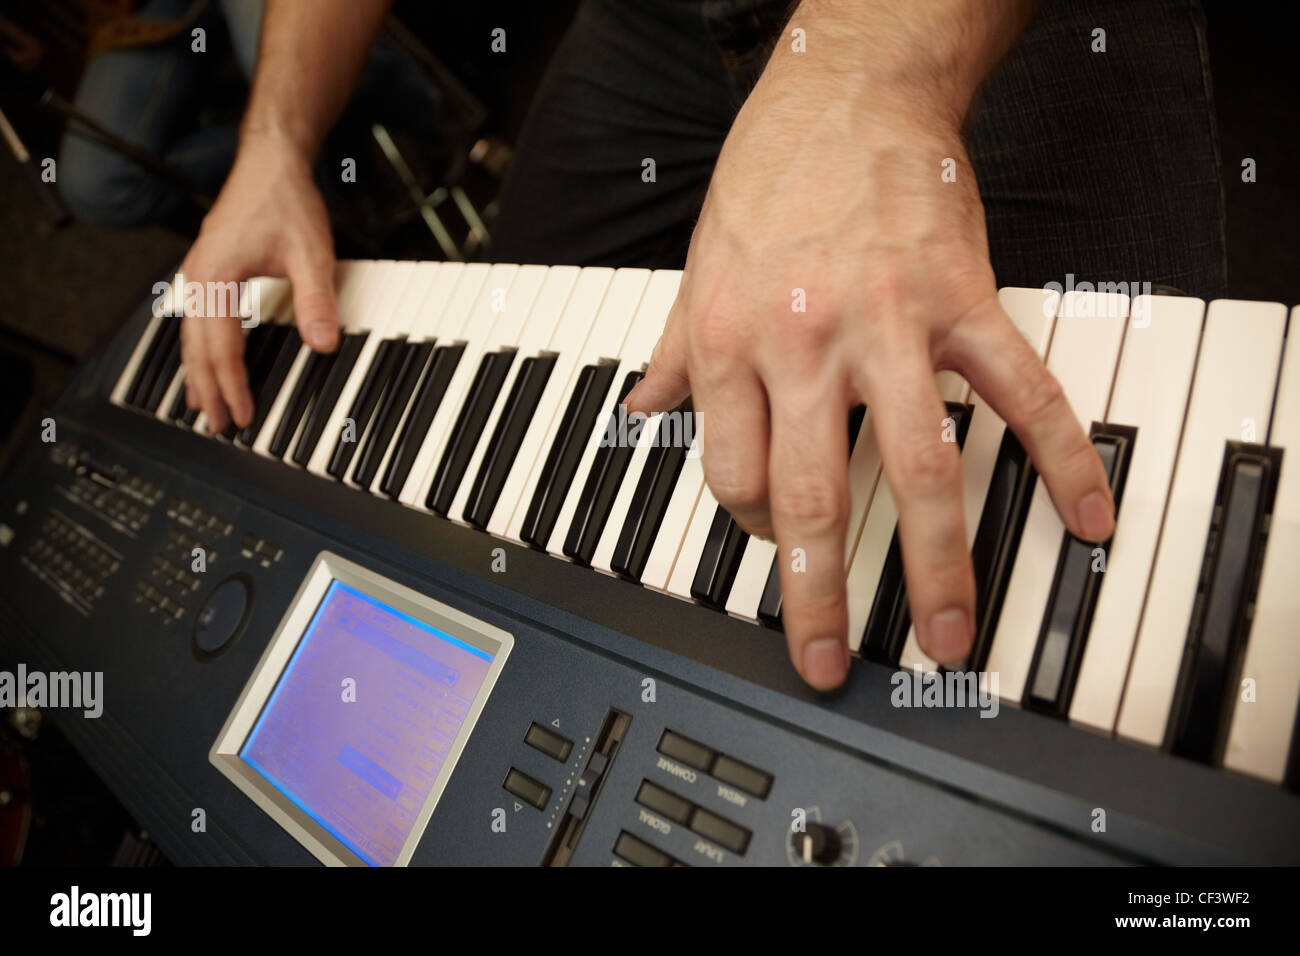 hands of keyboard player on keys of synthesizer. focus on big finger of left hand - Stock Image